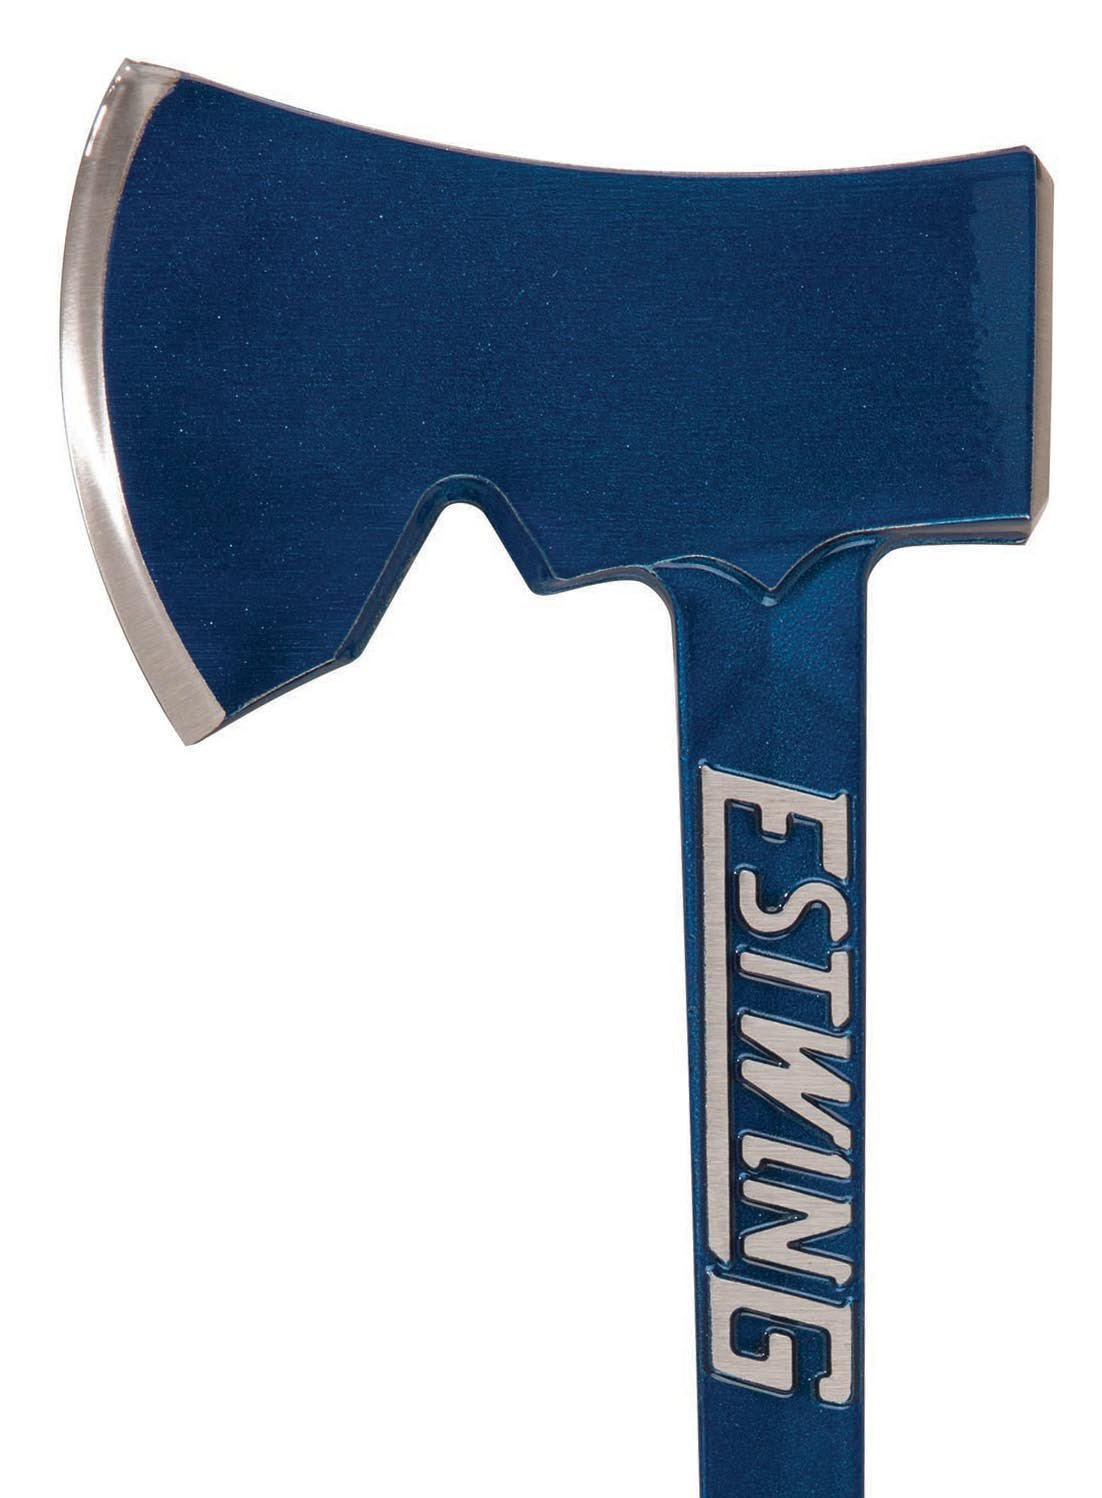 Estwing Camper's Axe - 14'' Hatchet with Forged Steel Construction & Shock Reduction Grip - E6-25A by Estwing (Image #2)